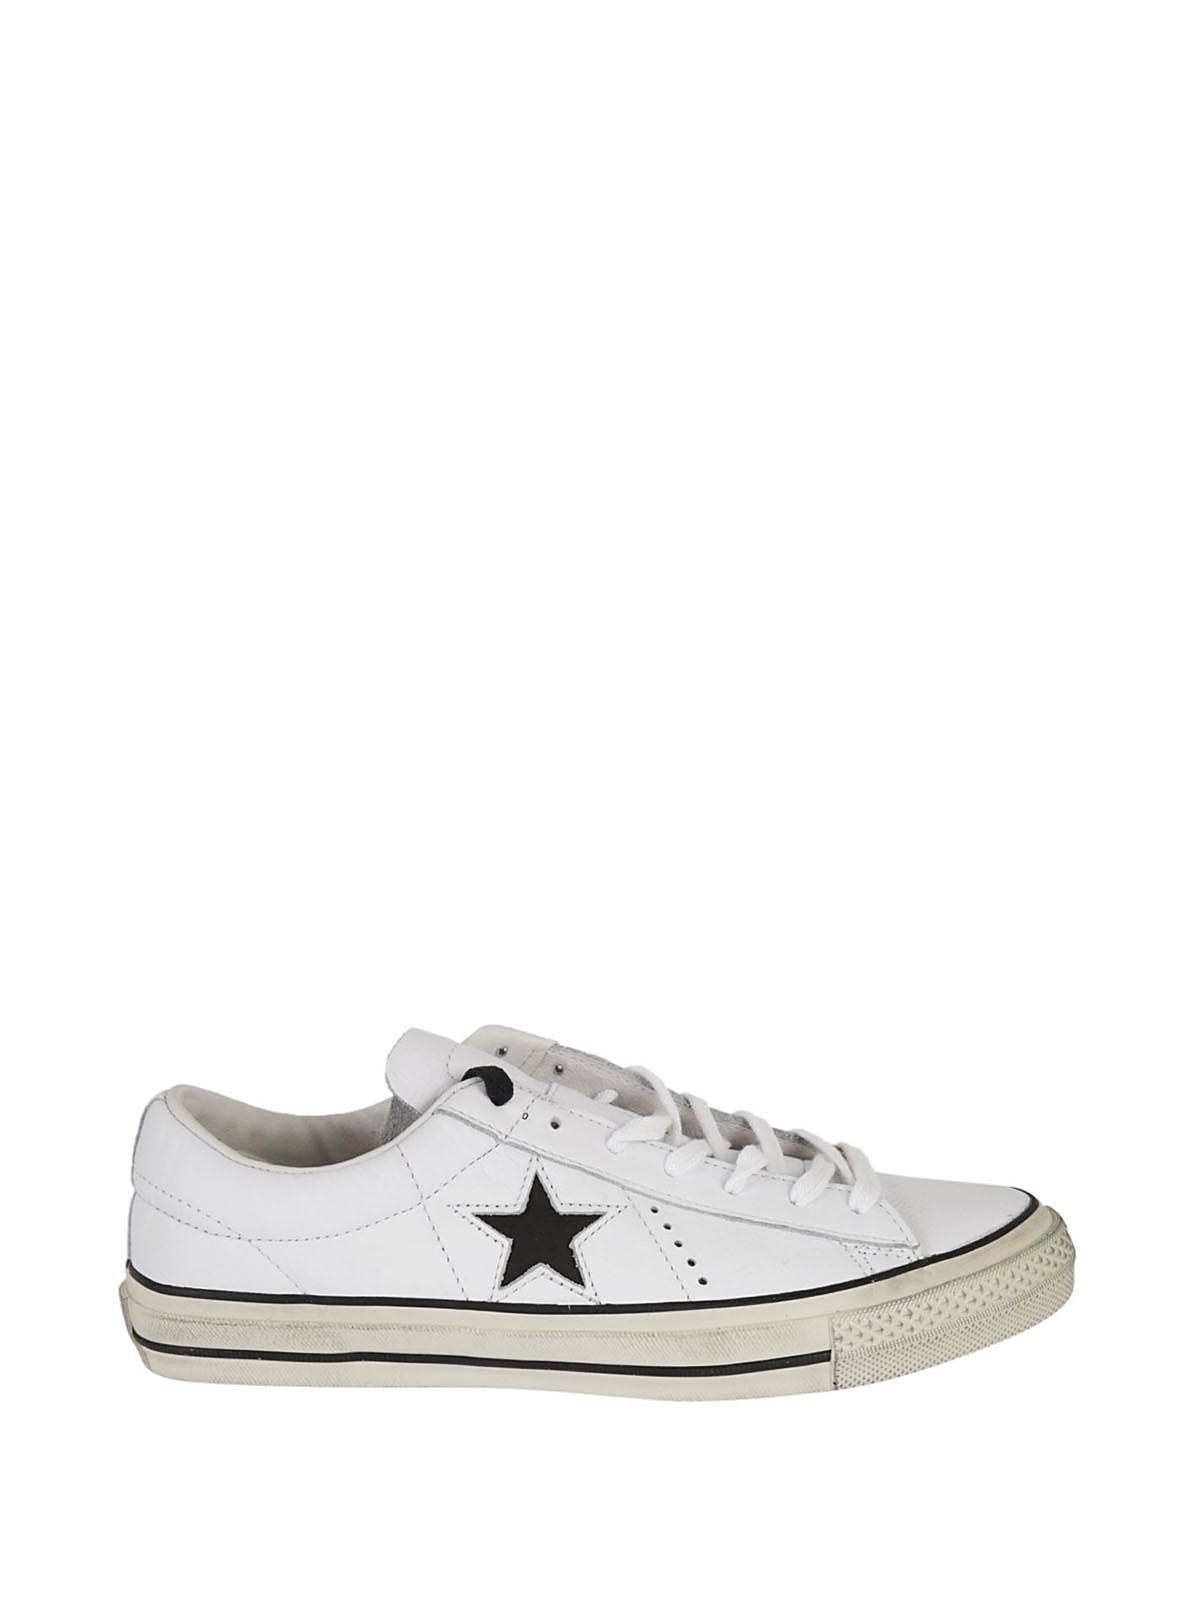 2f9a9ecb1688 ... Black White Image 1  CONVERSE ONE STAR OX DISTRESSED SNEAKERS. converse  shoes ...